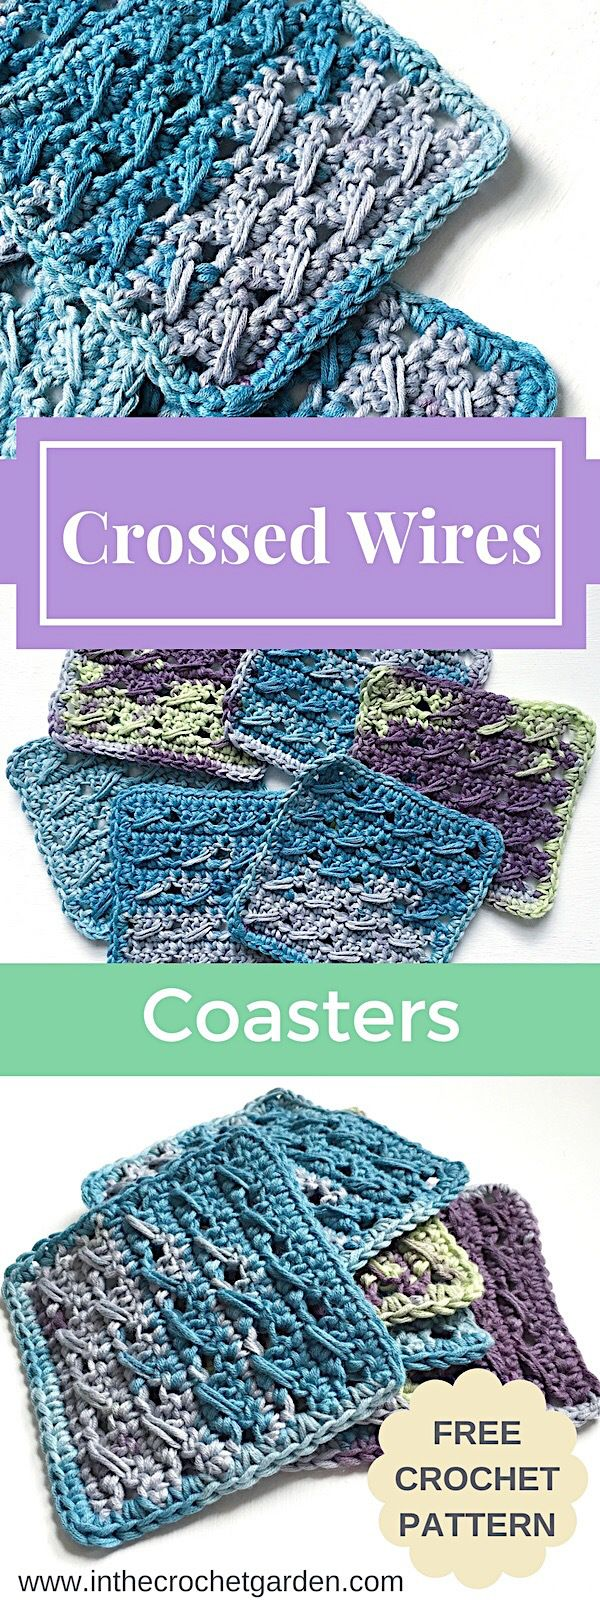 451 Best Coasters Placemats Napkin Rings Images On Pinterest Crochet Coaster Patterns Diagrams A Few Pretty Snowflakes Crossed Wires